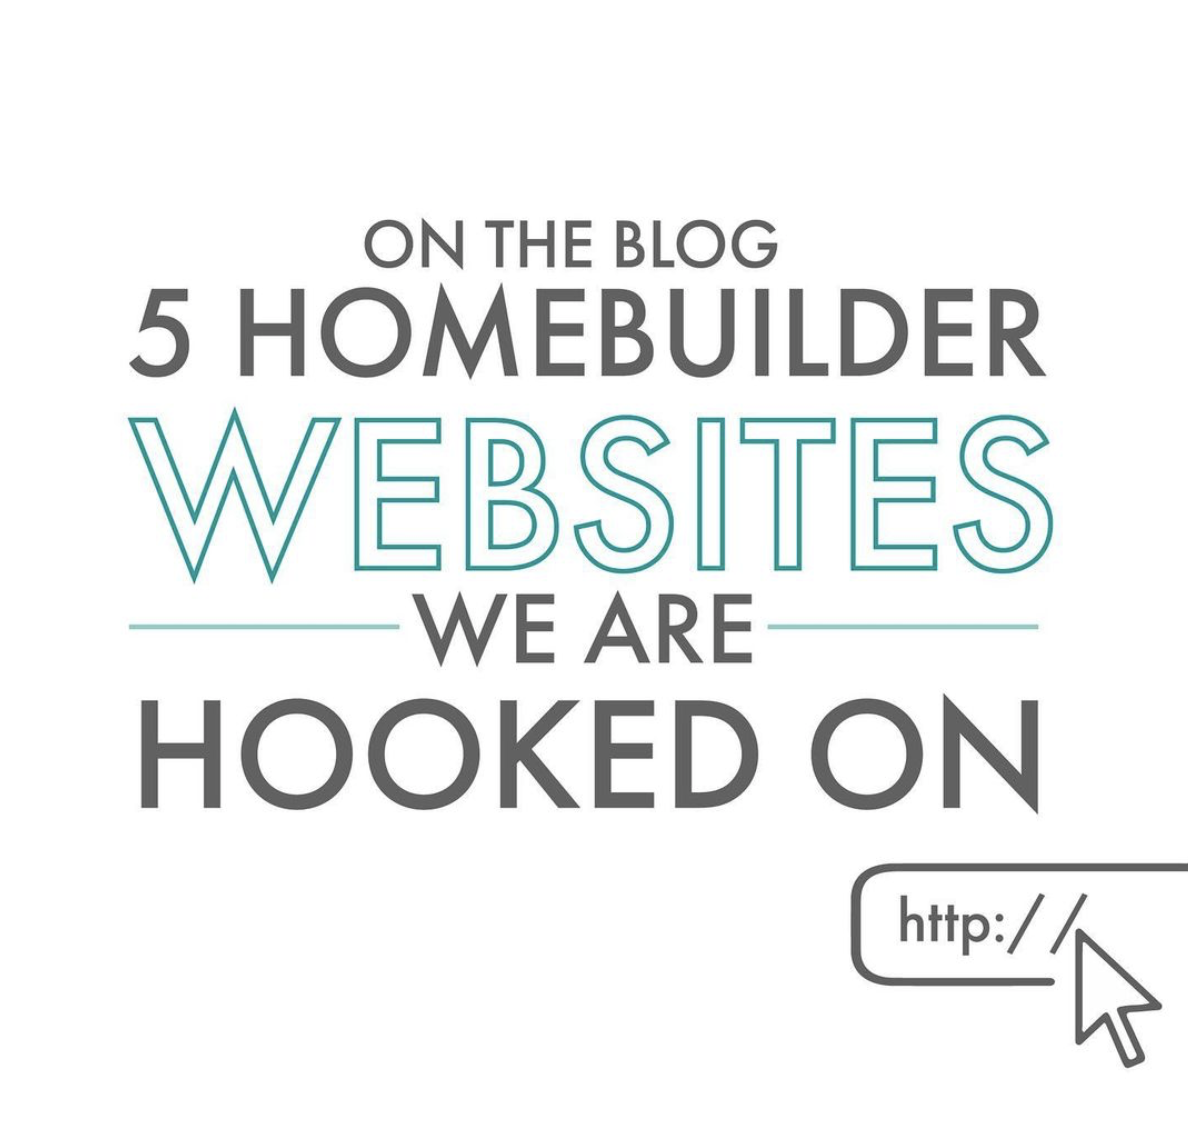 5 Homebuilder Websites We Are Hooked On